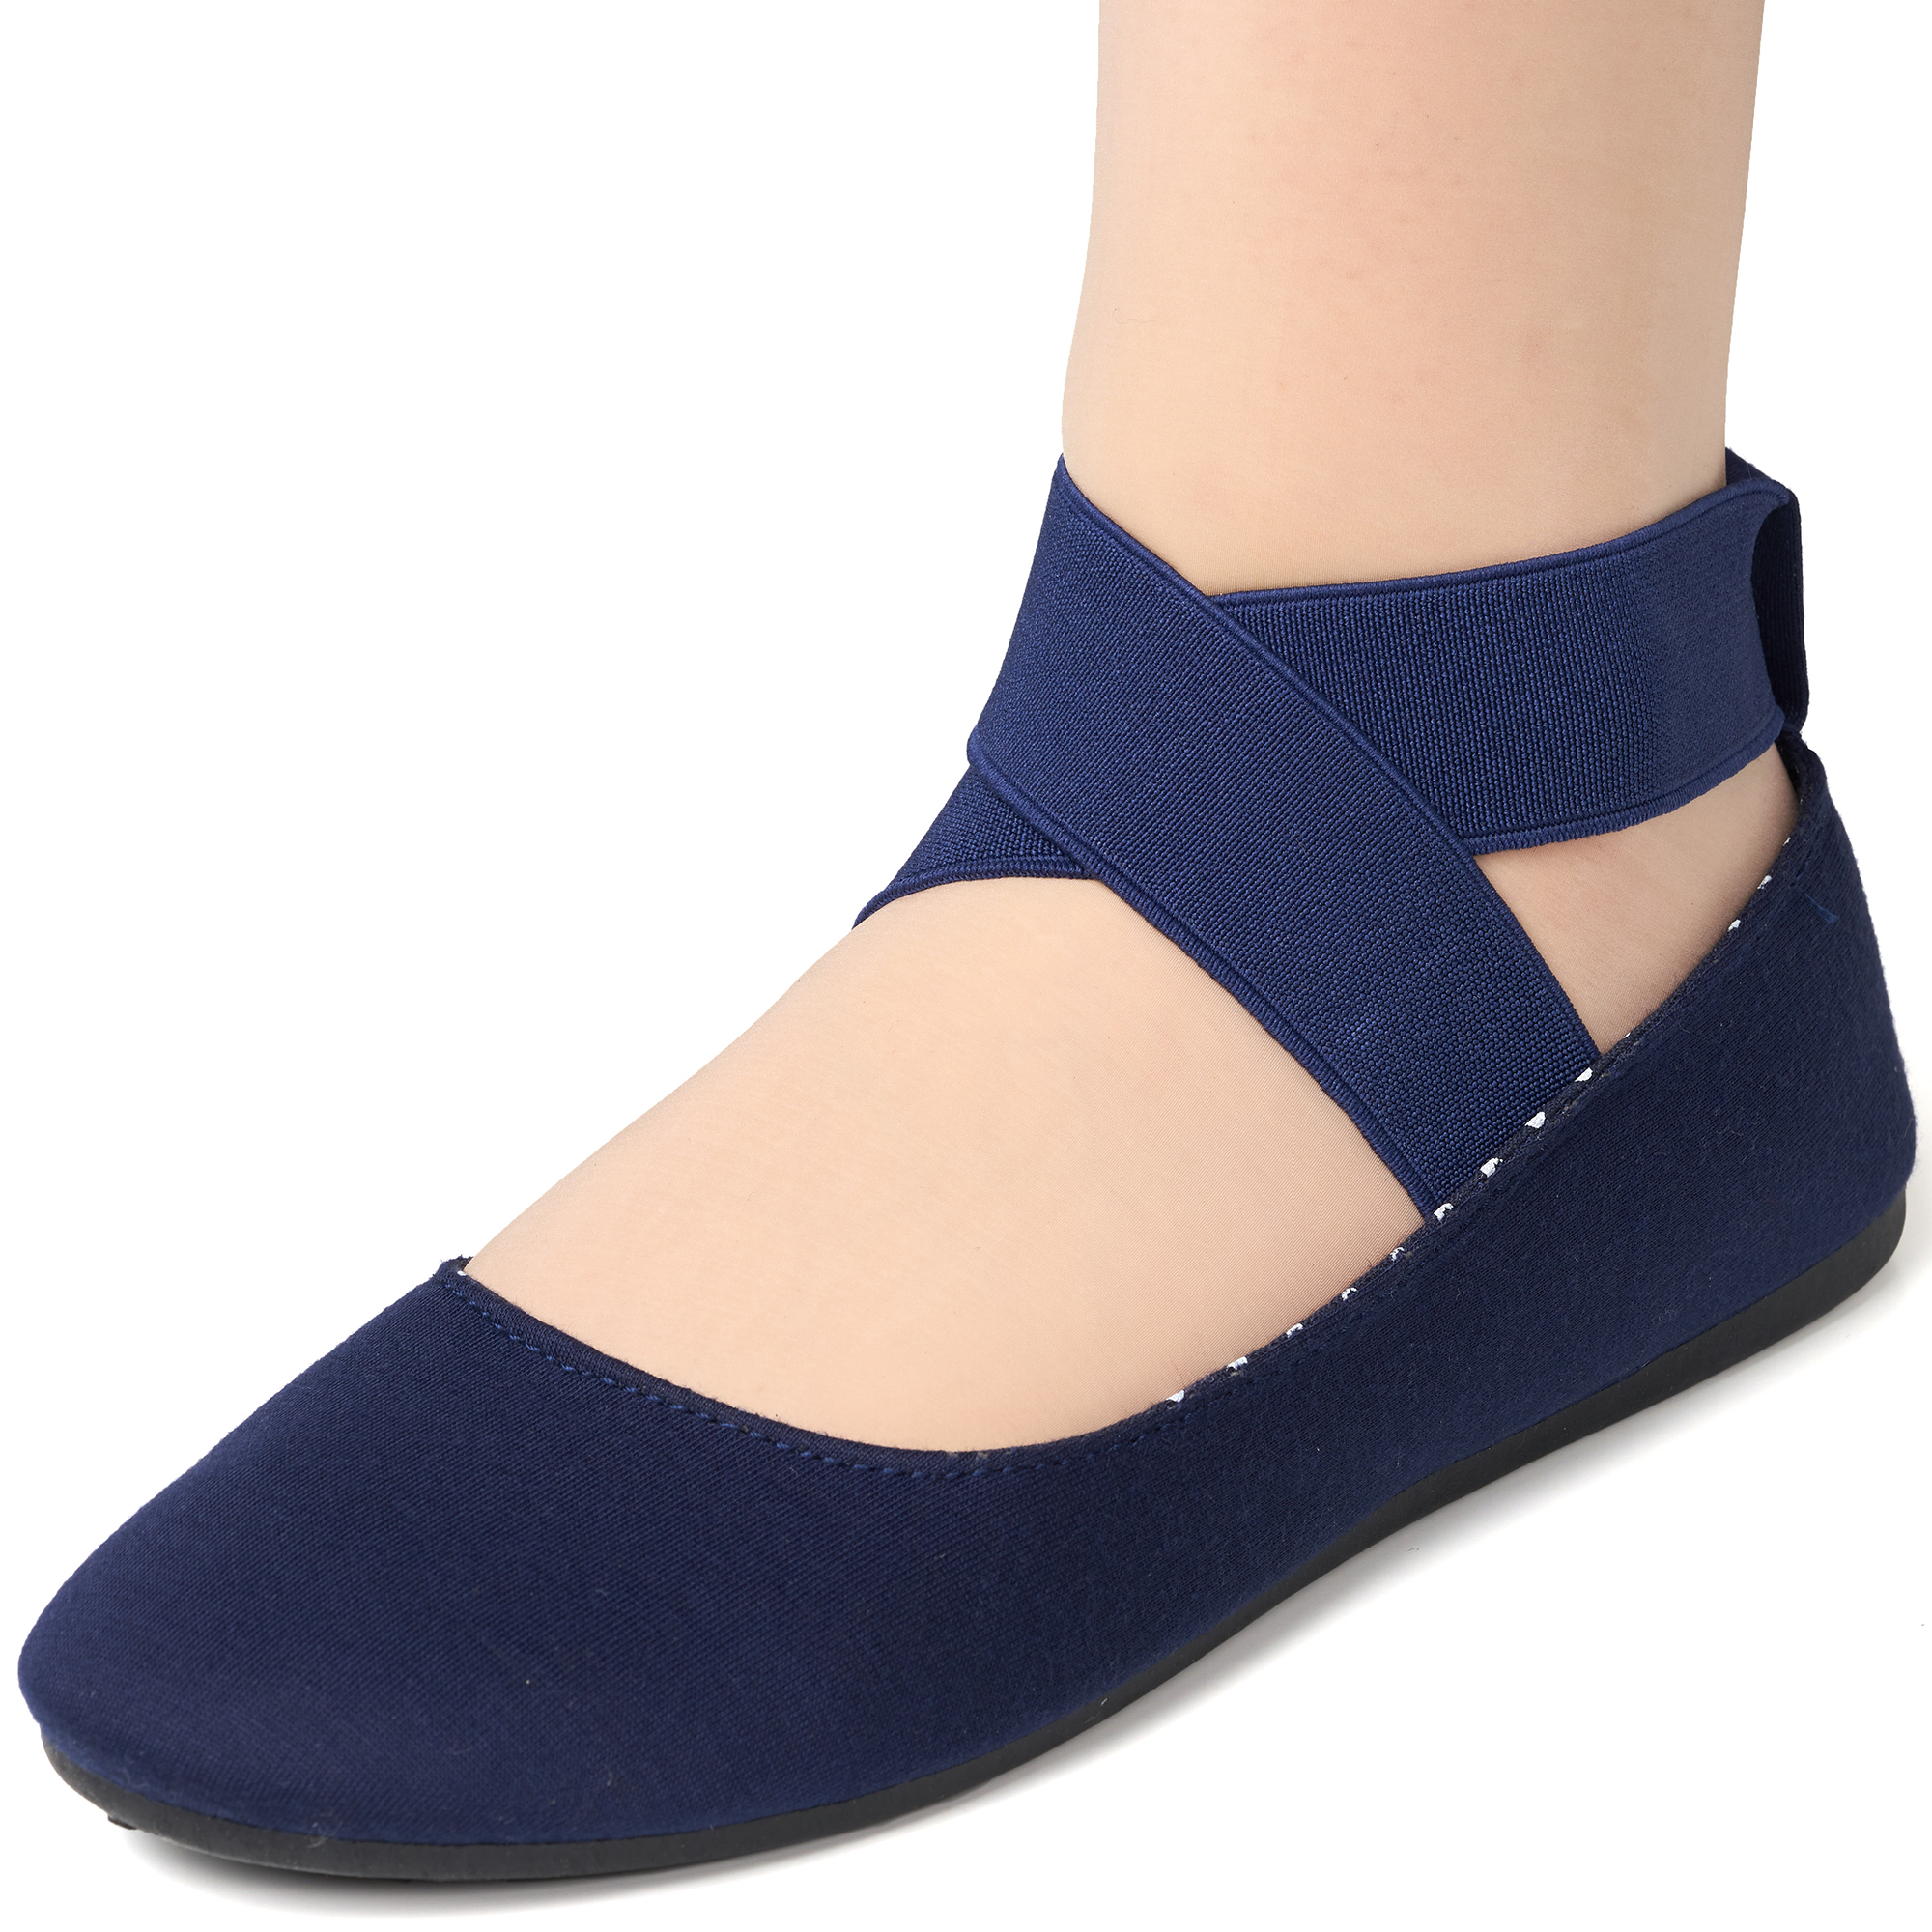 Alpine-Swiss-Peony-Womens-Ballet-Flats-Elastic-Ankle-Strap-Shoes-Slip-On-Loafers thumbnail 43